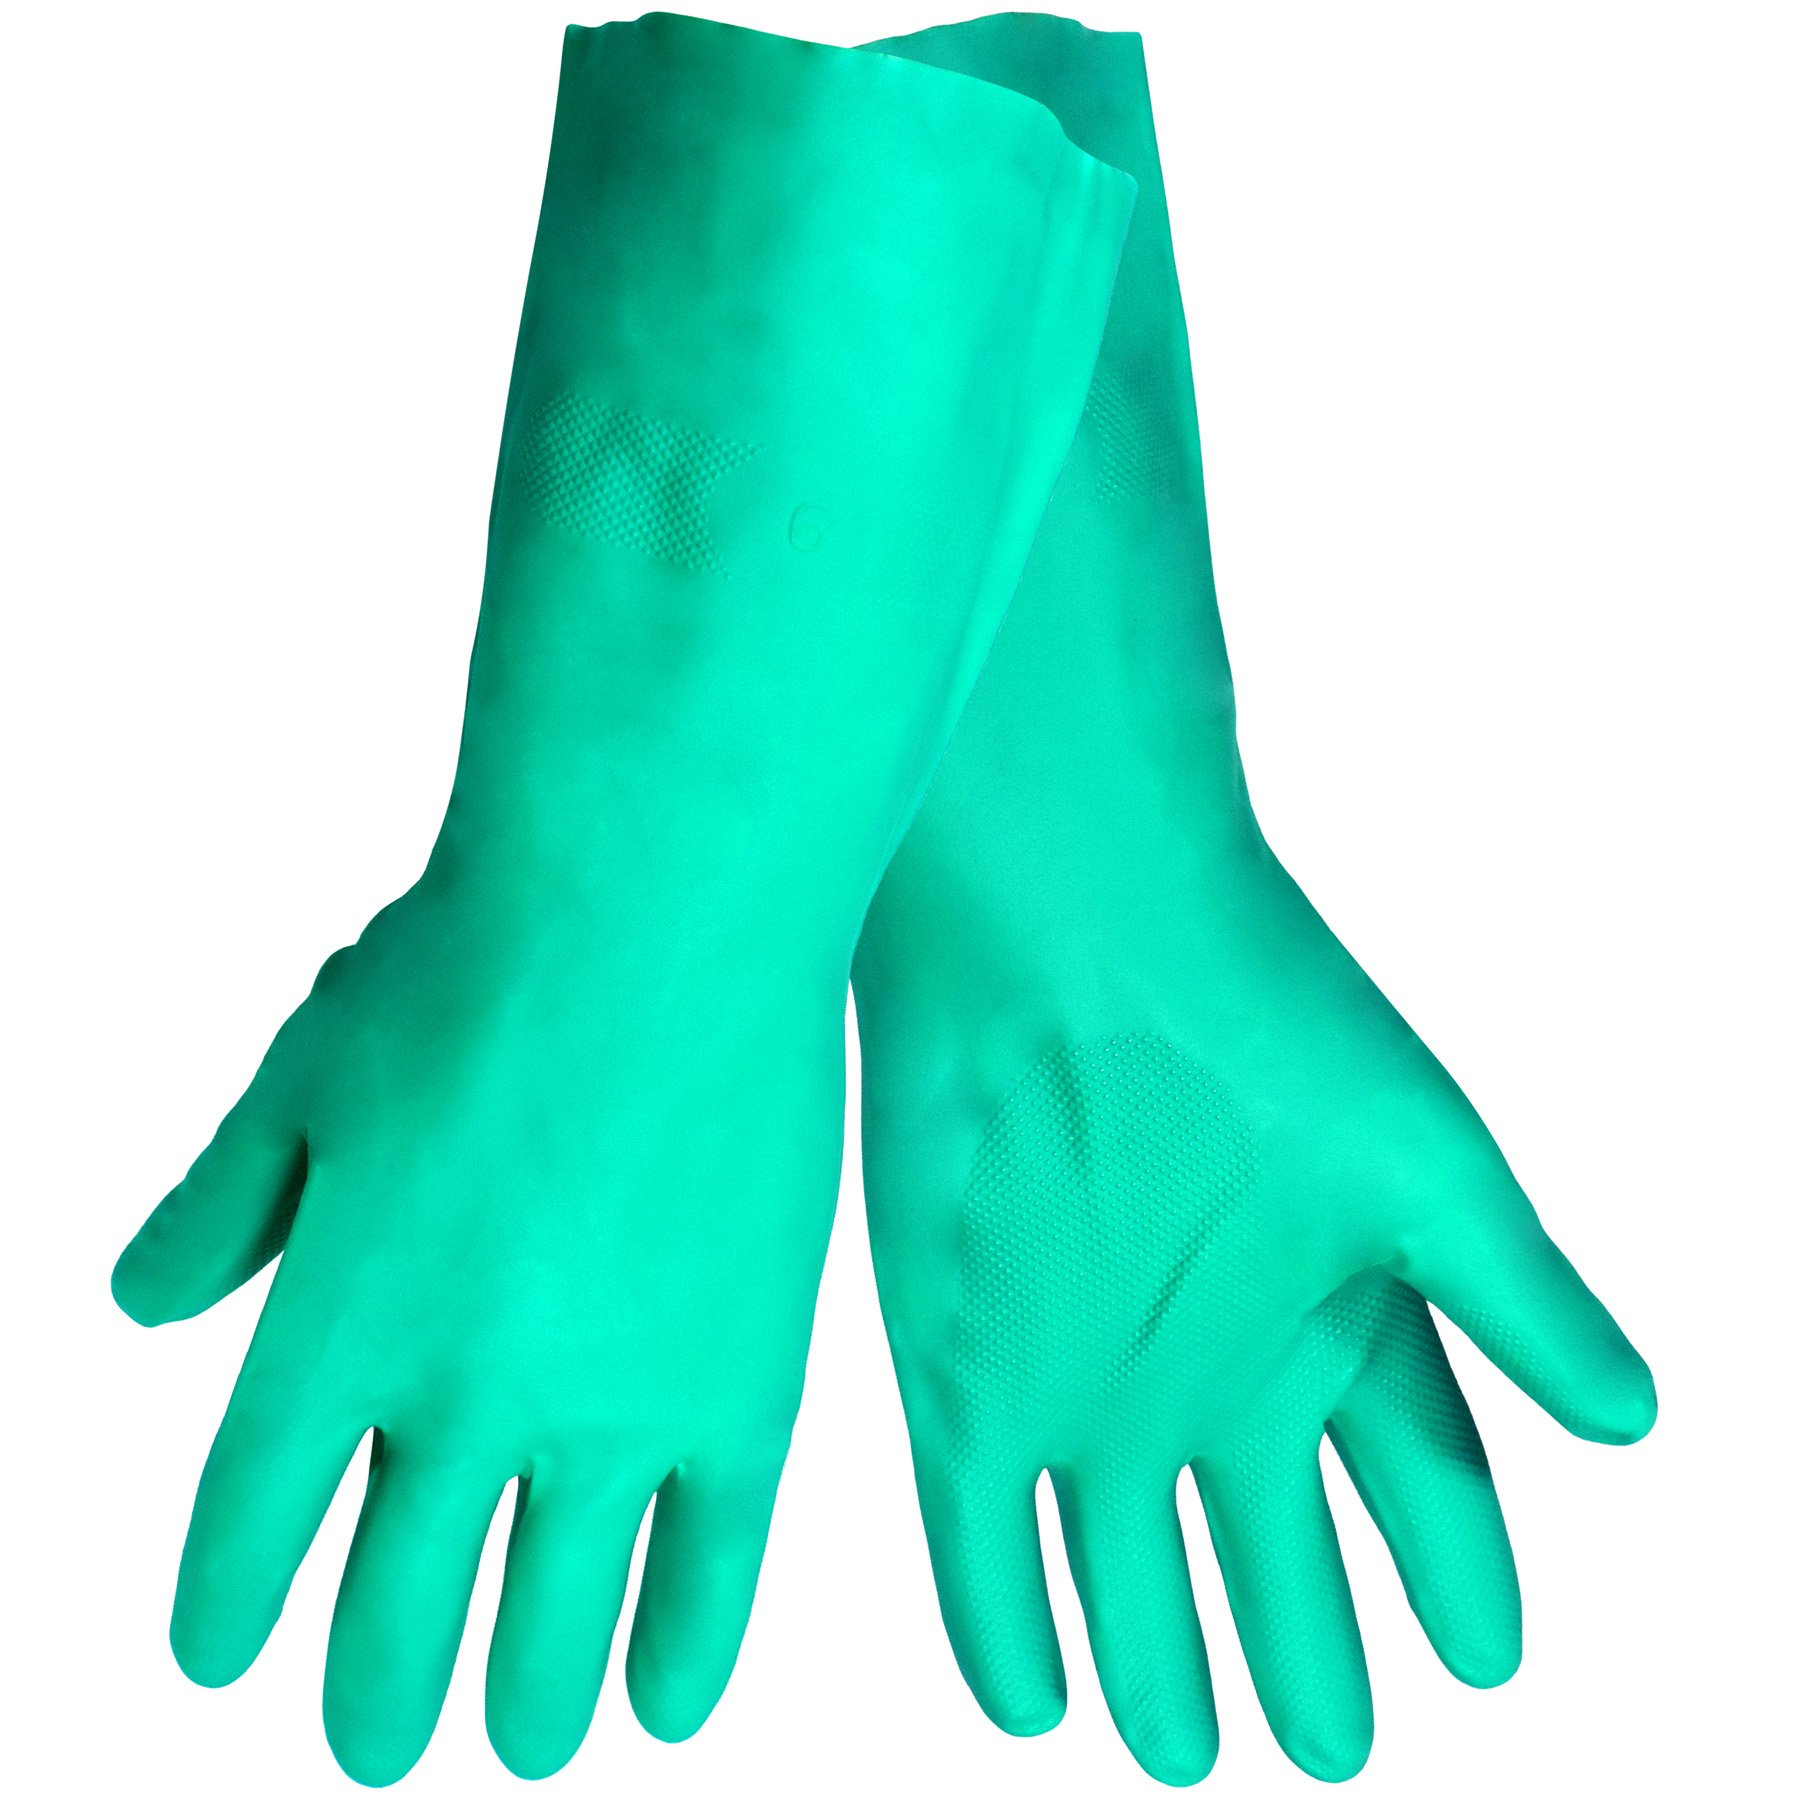 Global Glove 515 Unlined Nitrile Diamond Pattern Glove, Chemical Resistant, 12 mil Thick, 13'' Length, Medium, Green (Case of 144)